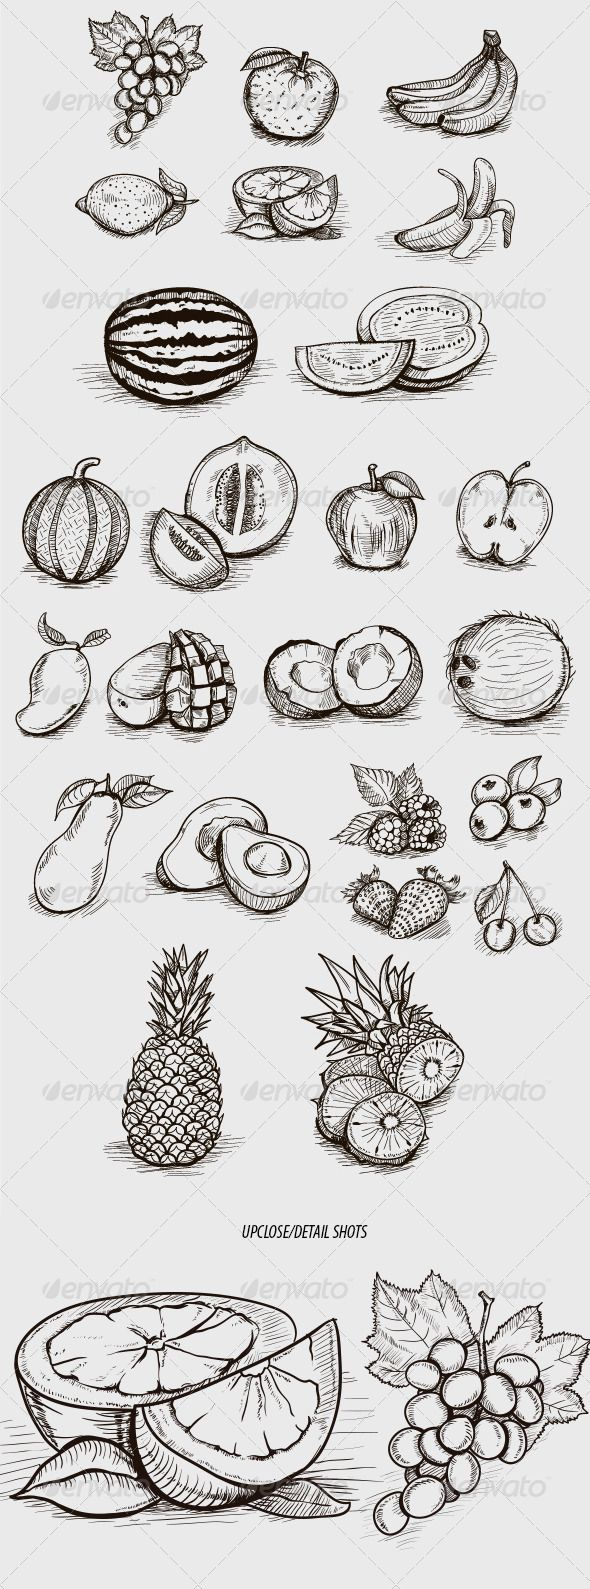 Sketched-Style Fruit Illustrations - Food Objects                                                                                                                                                                                 More